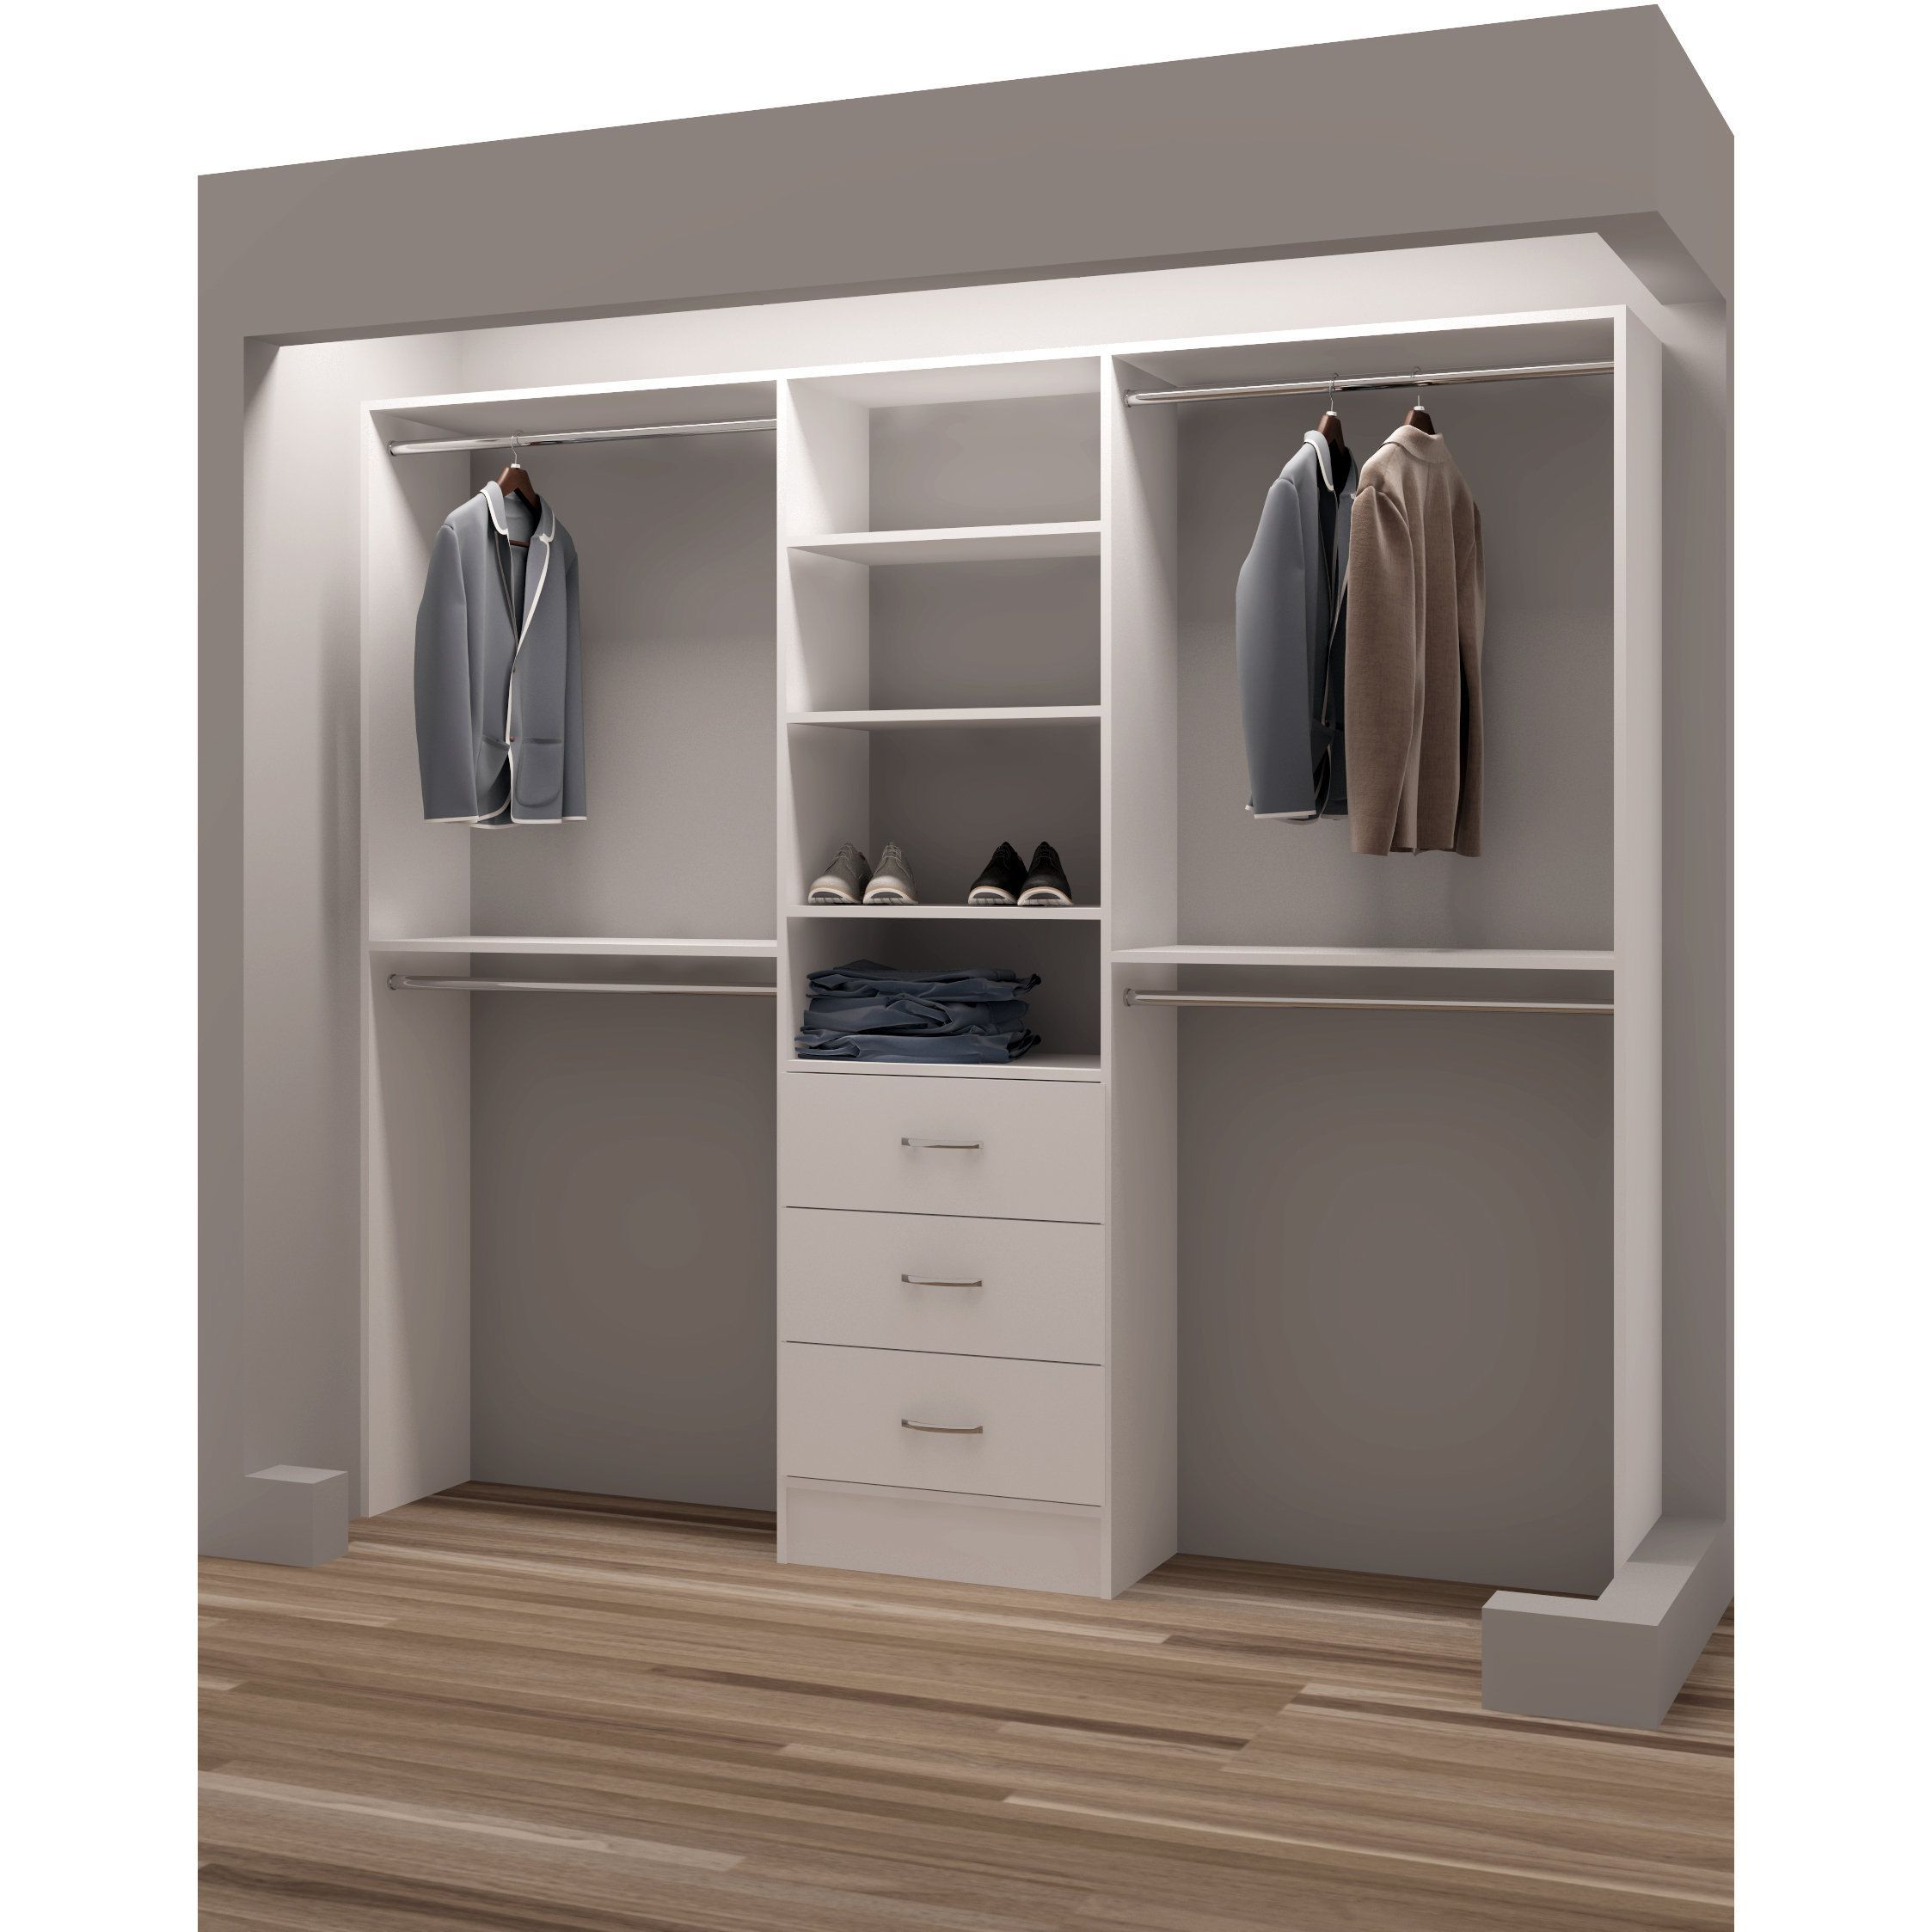 TidySquares Classic Wood Reach In Closet Organizer Diy Bedroom